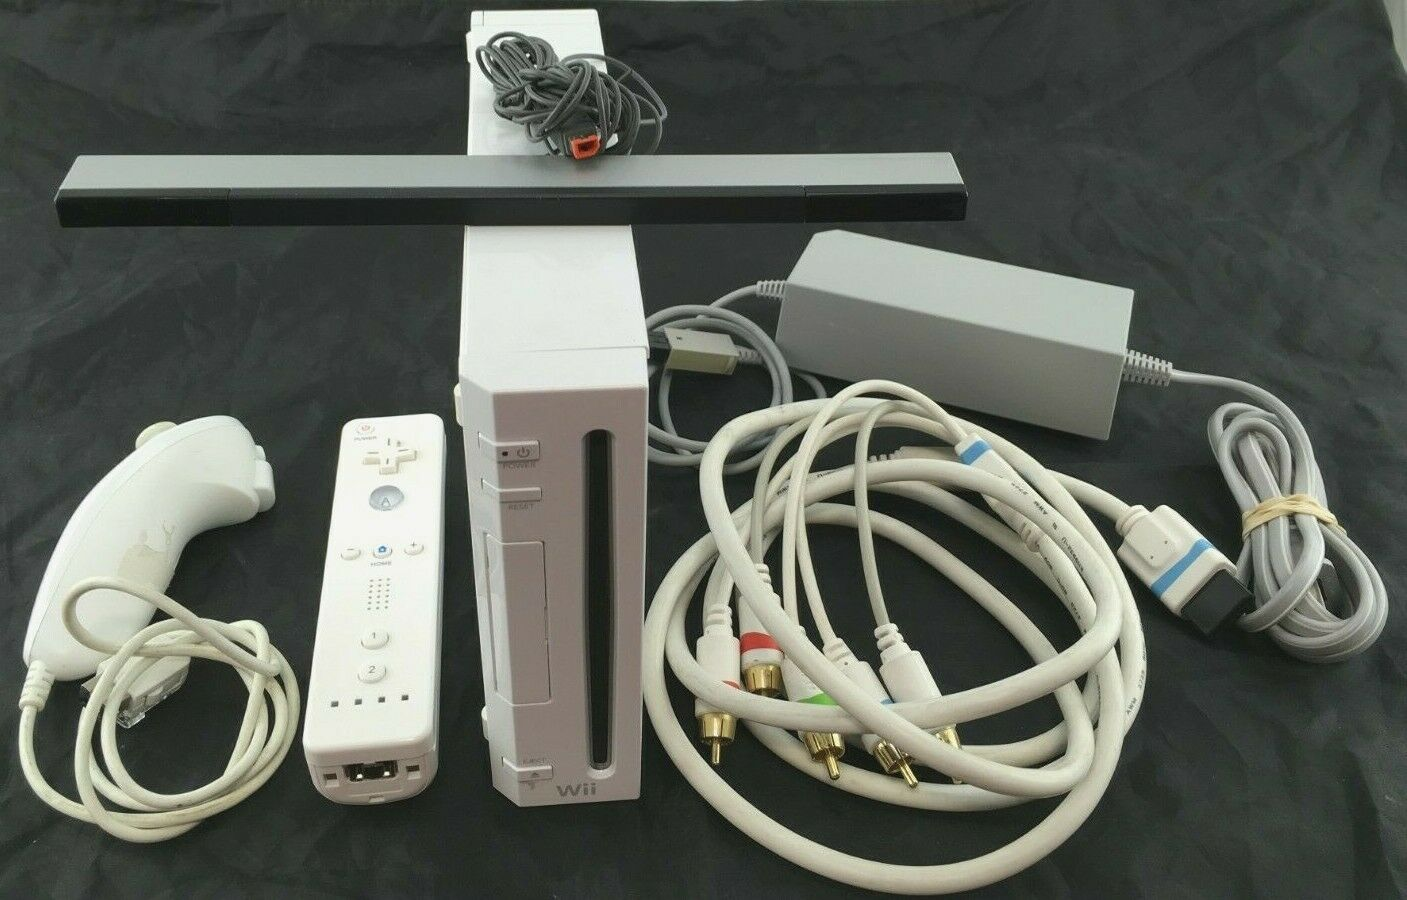 Nintendo Wii with Power, Component Cable, Sensor Bar, Wiimote, Nunchuk (RVL-001)